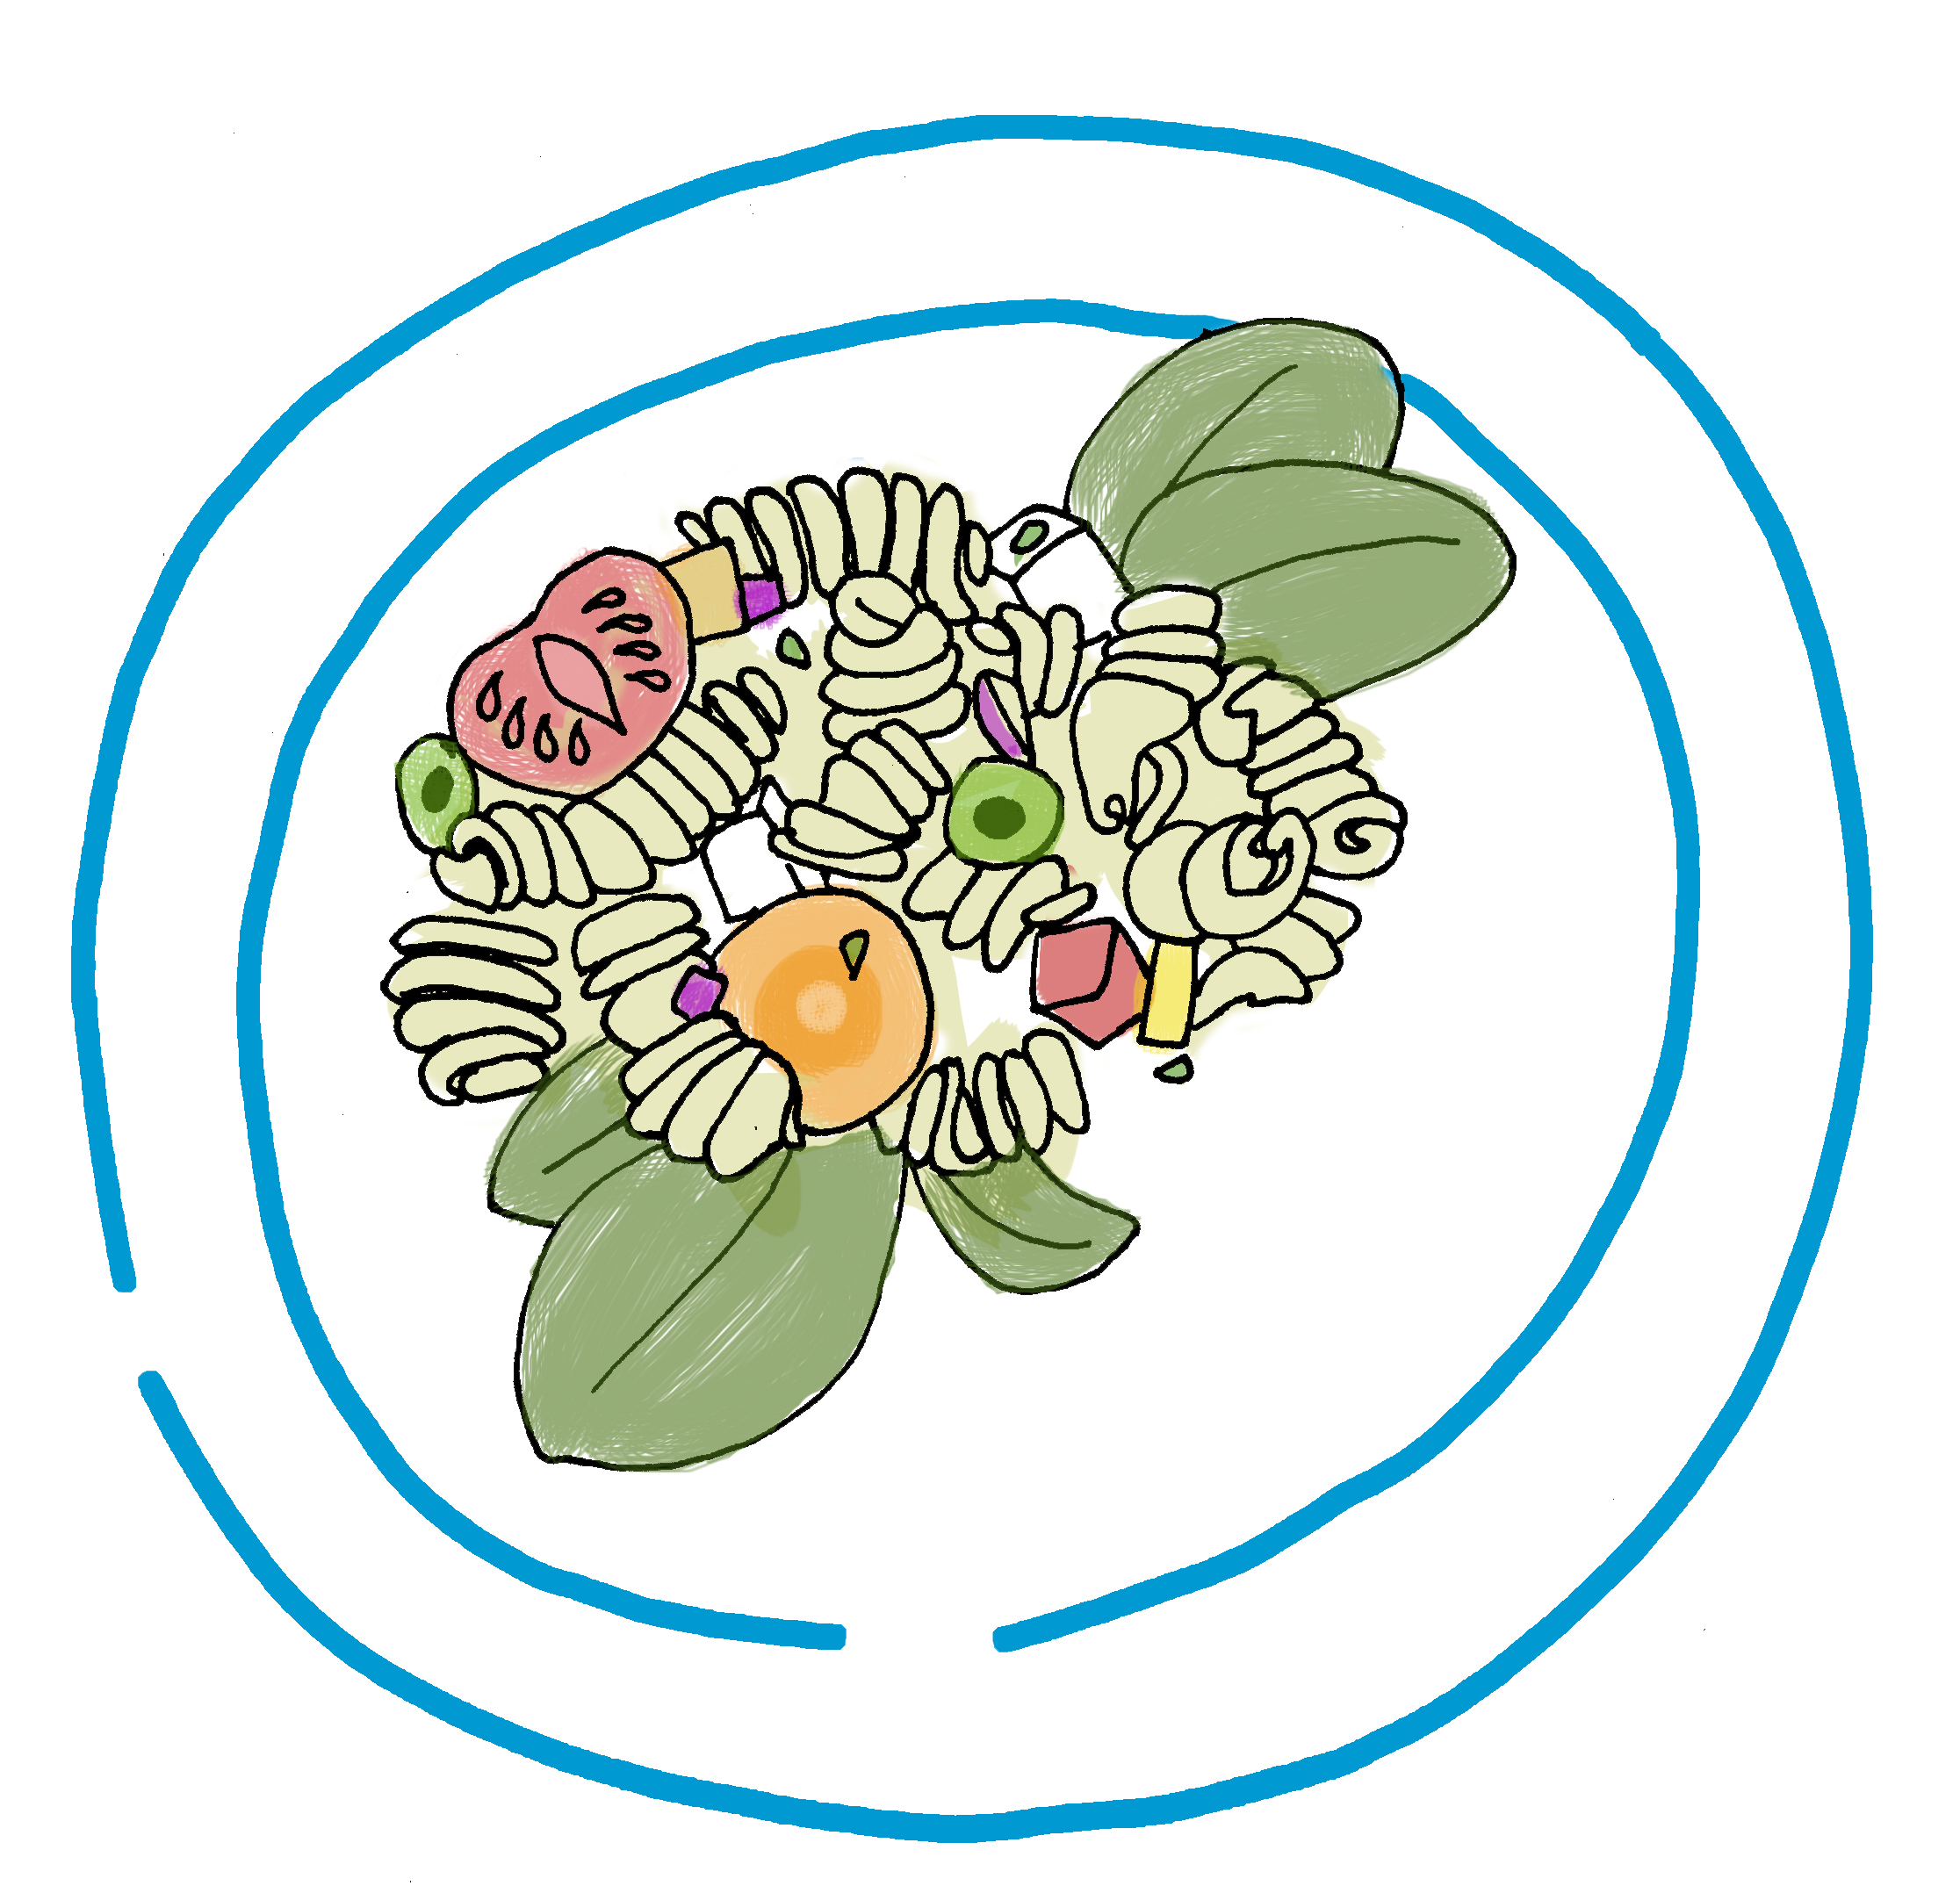 Salad clipart pasta salad. Drawing at getdrawings com